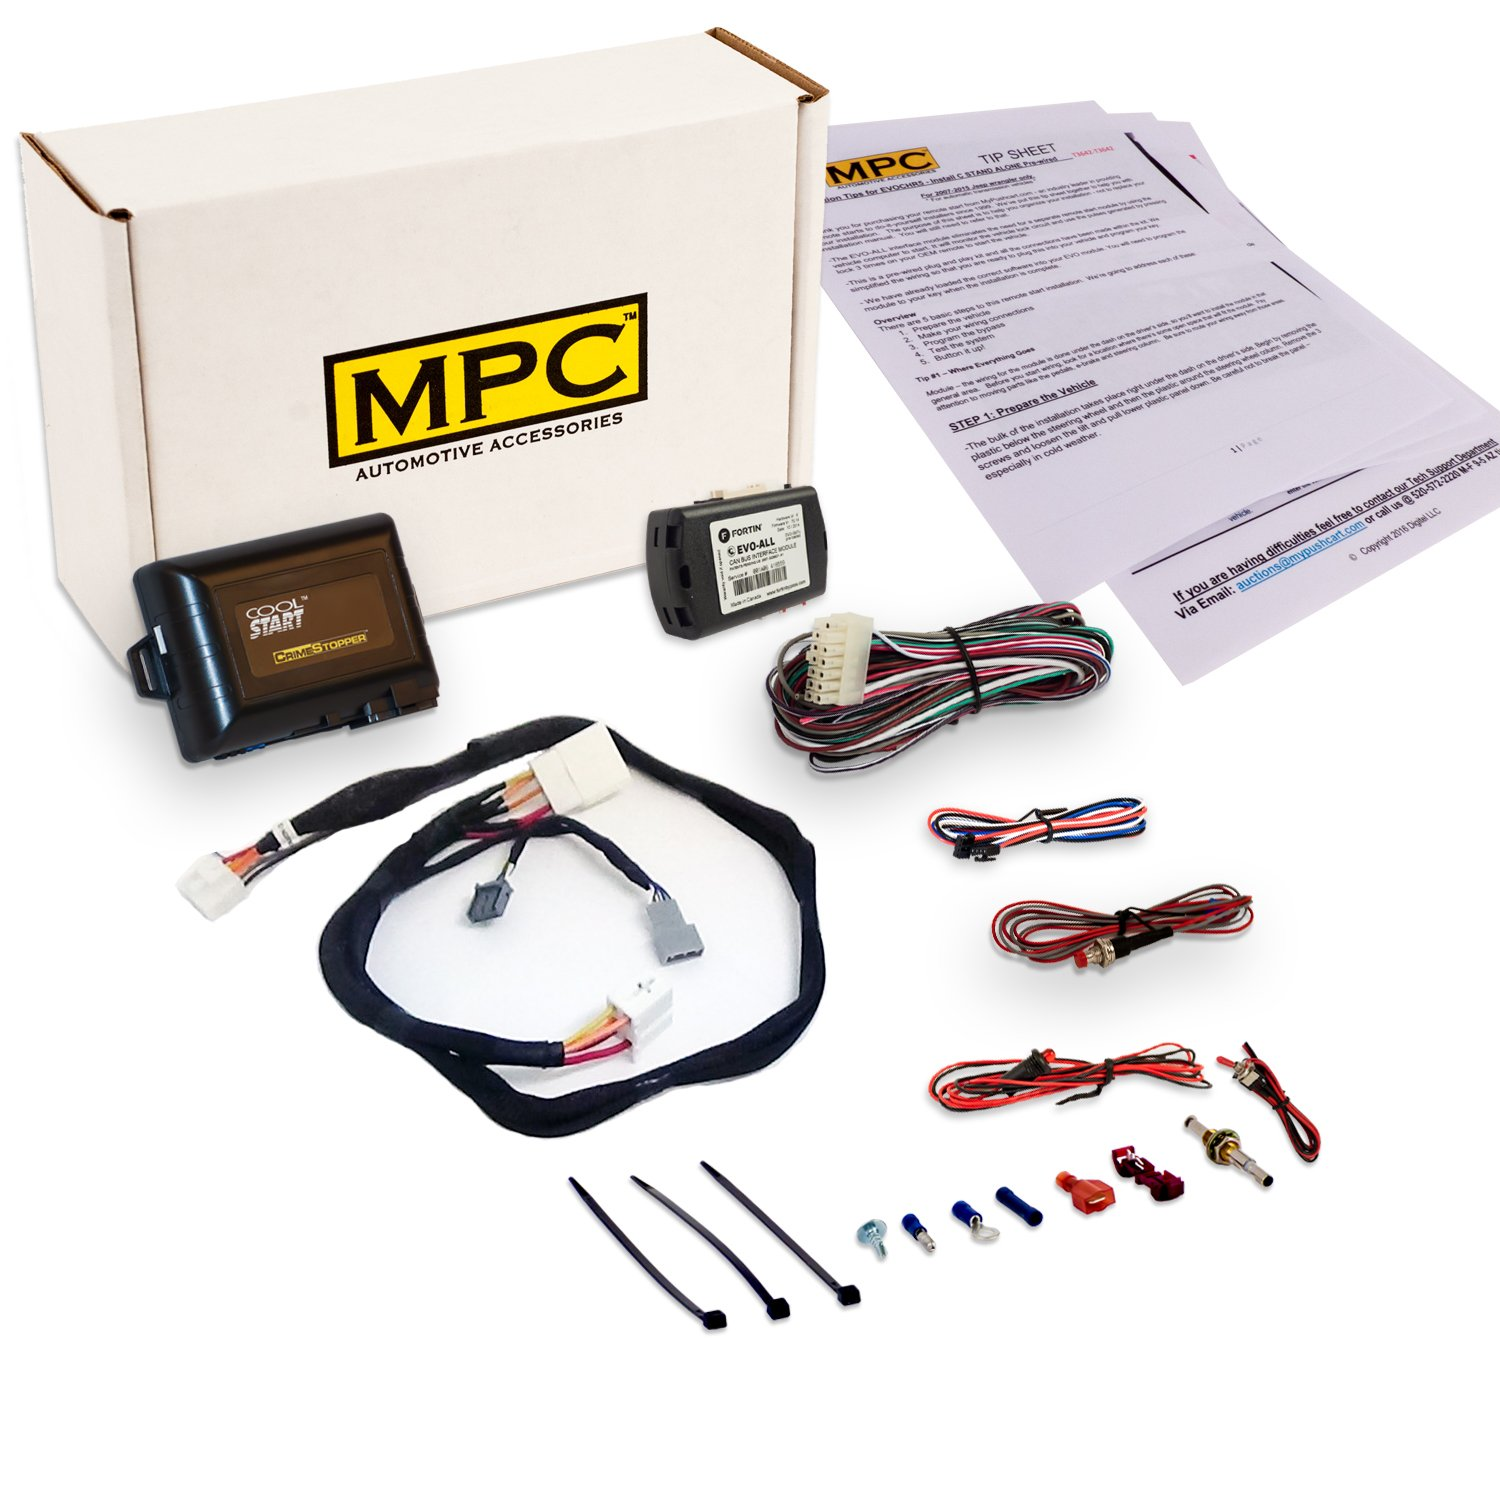 Add-on Remote Start Kit For 2009-2015 Honda Pilot - Key to Start - Plug and Play - Includes T-Harness -Uses OEM Remotes